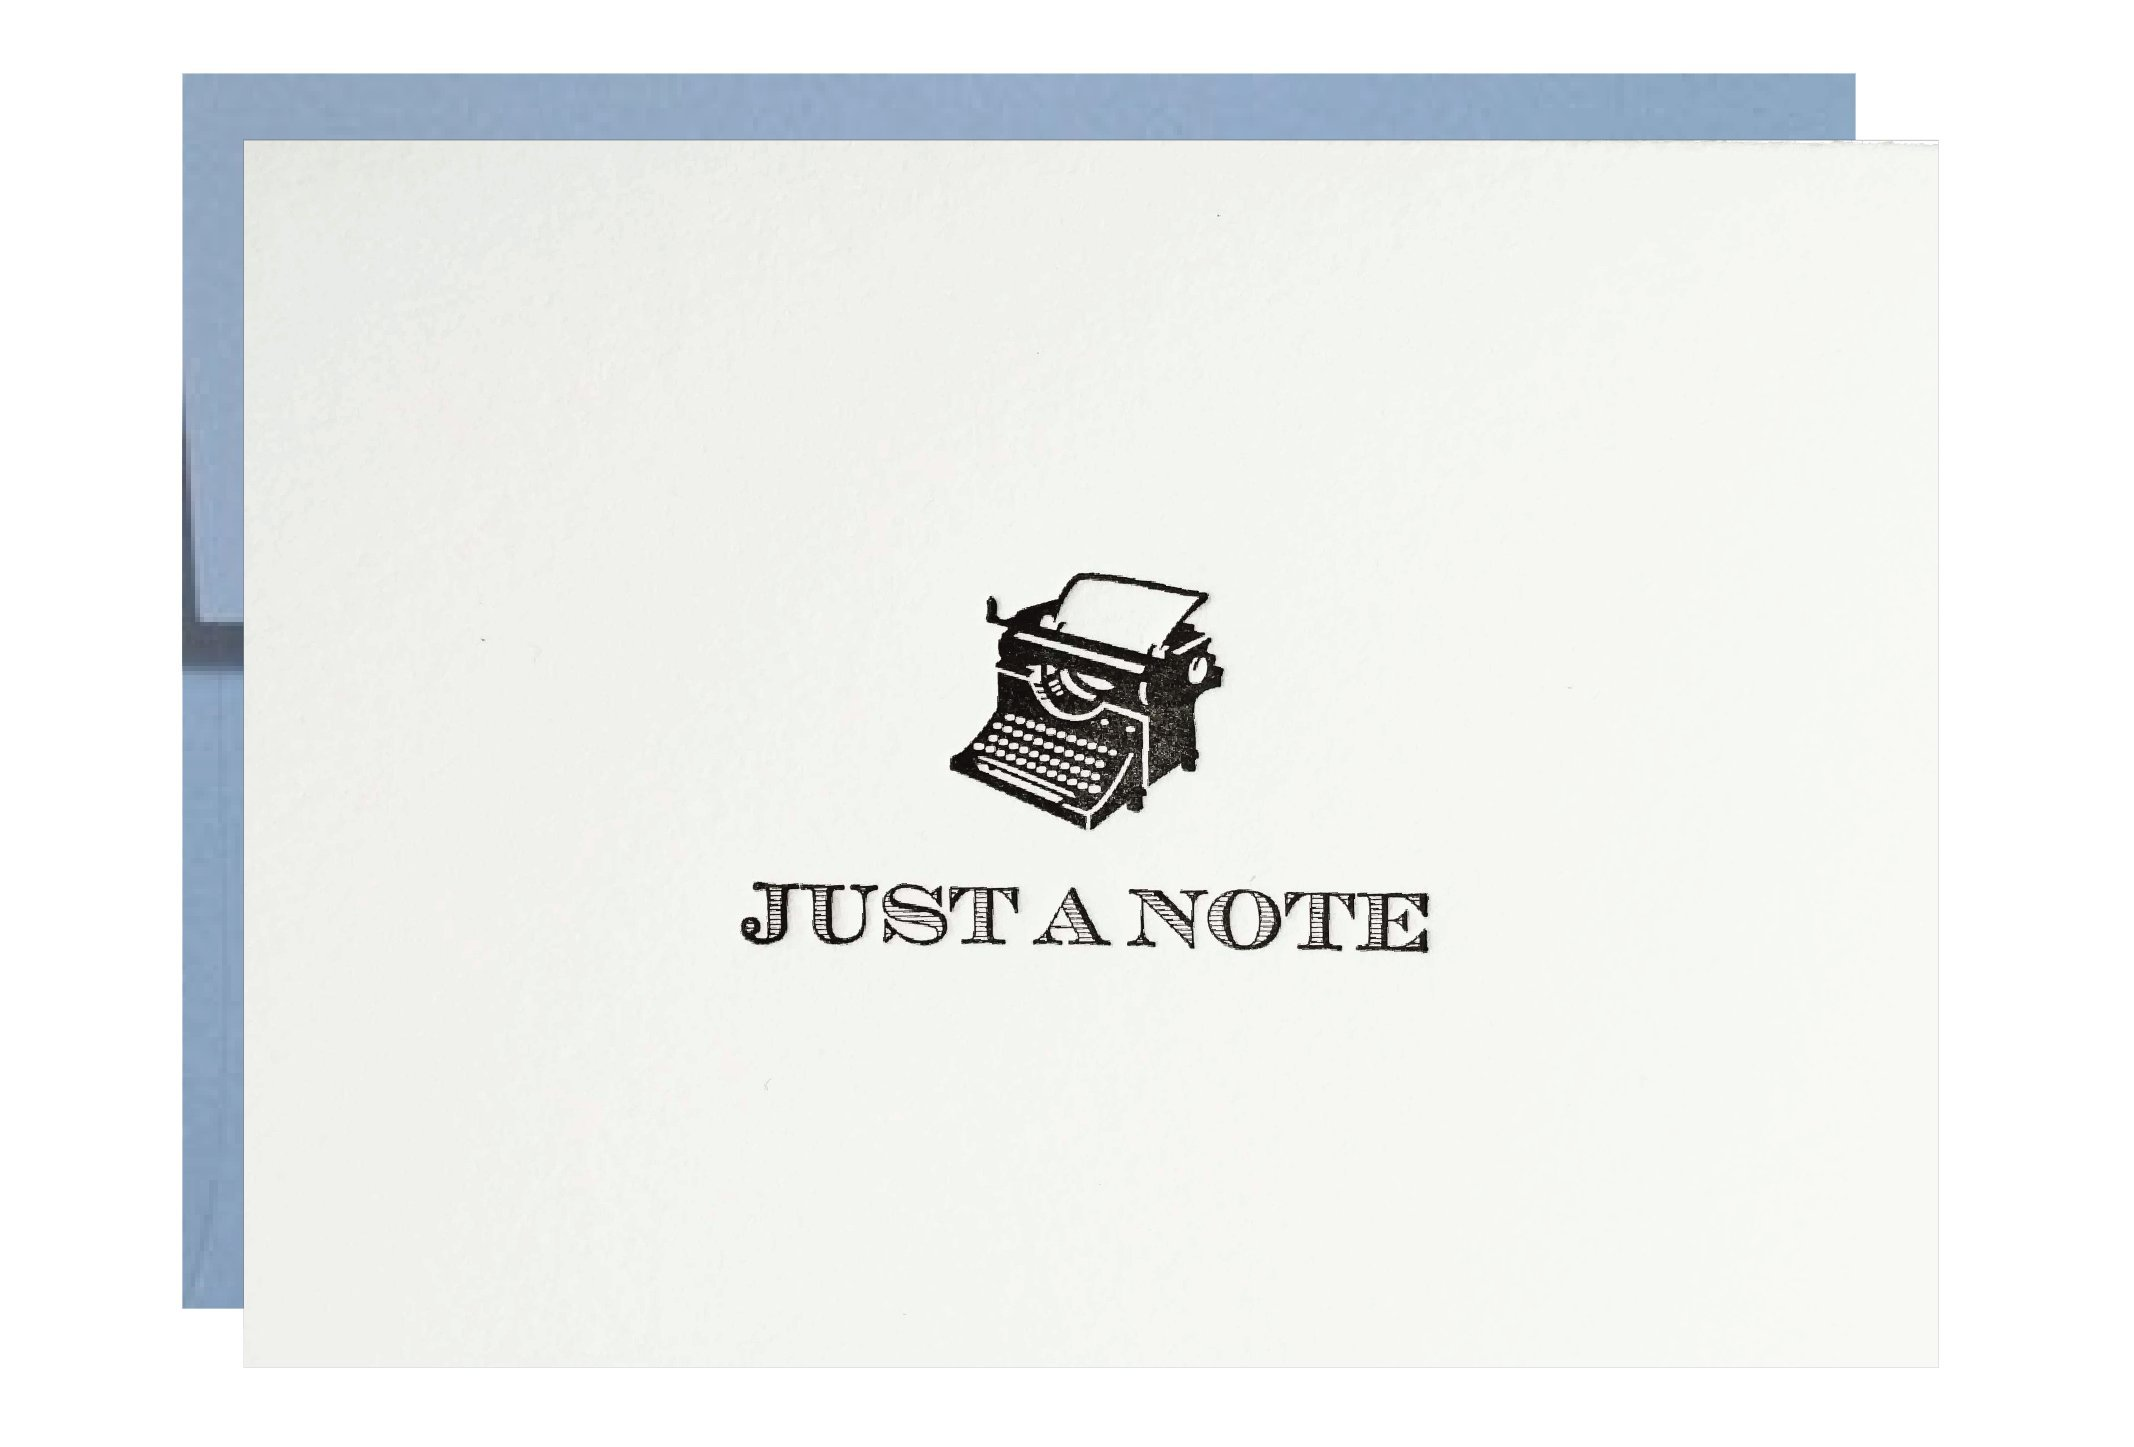 Letterpress Stationery Just a Note Typewriter - 5 pack by Idea Chic